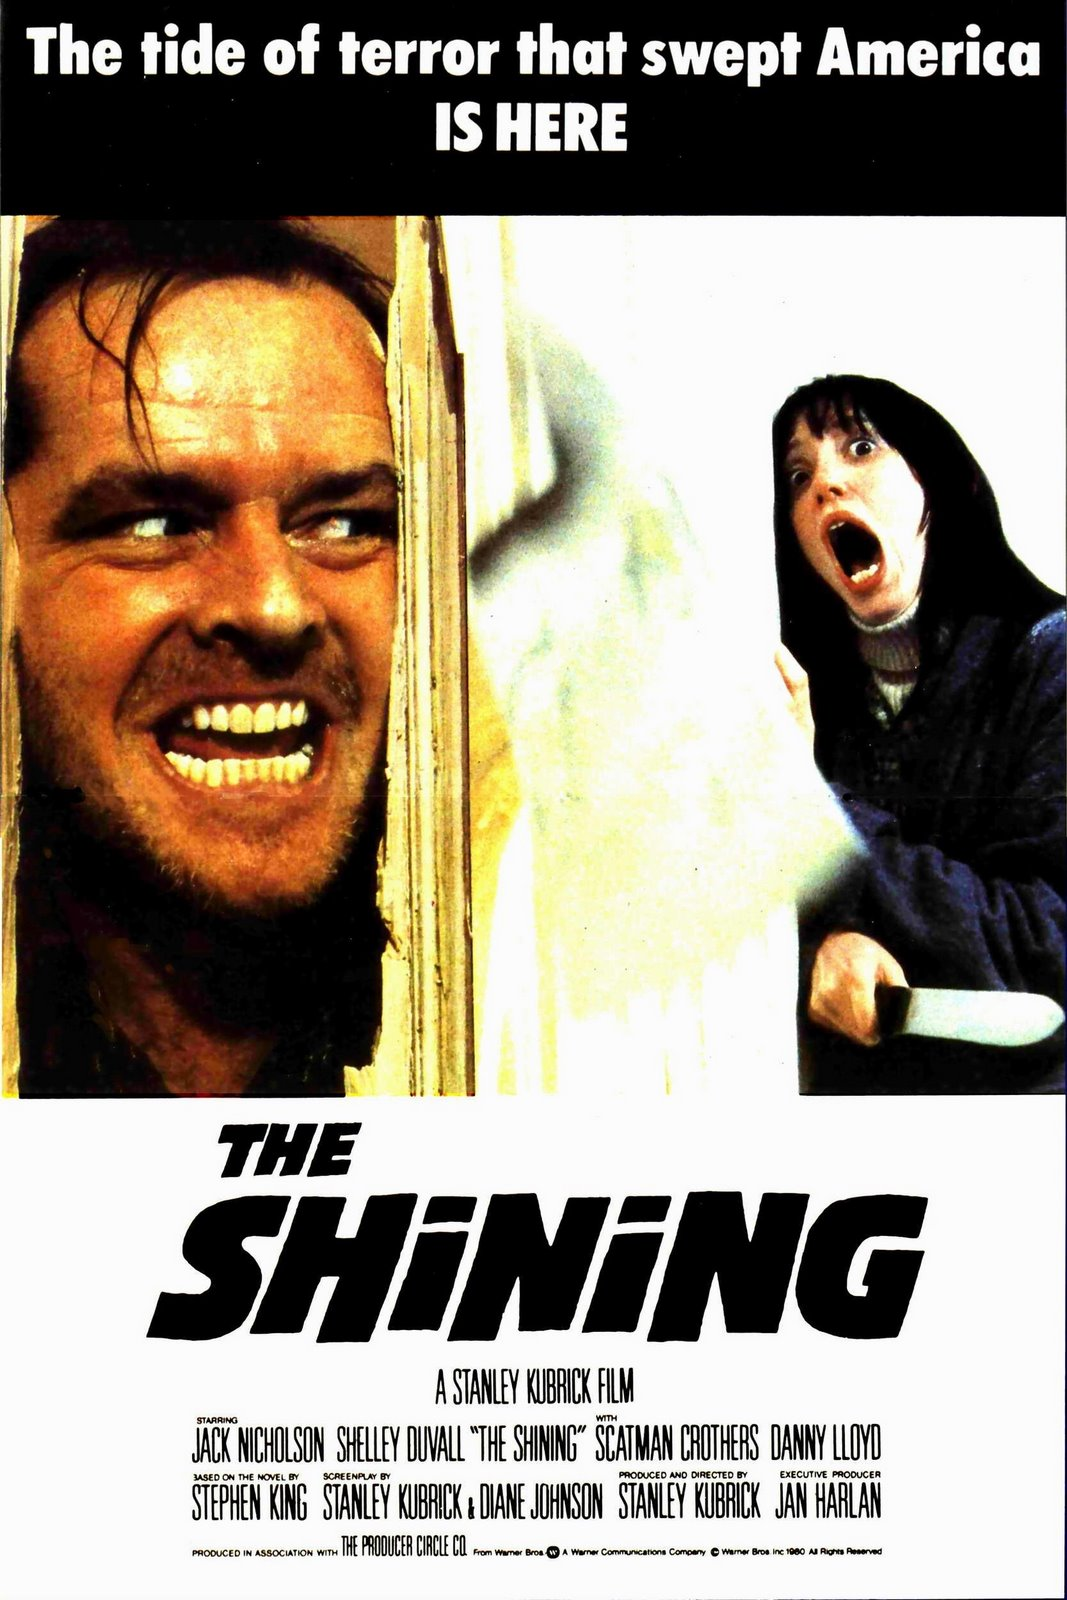 the shining poster - Interview - Jesse Hasek of 10 years